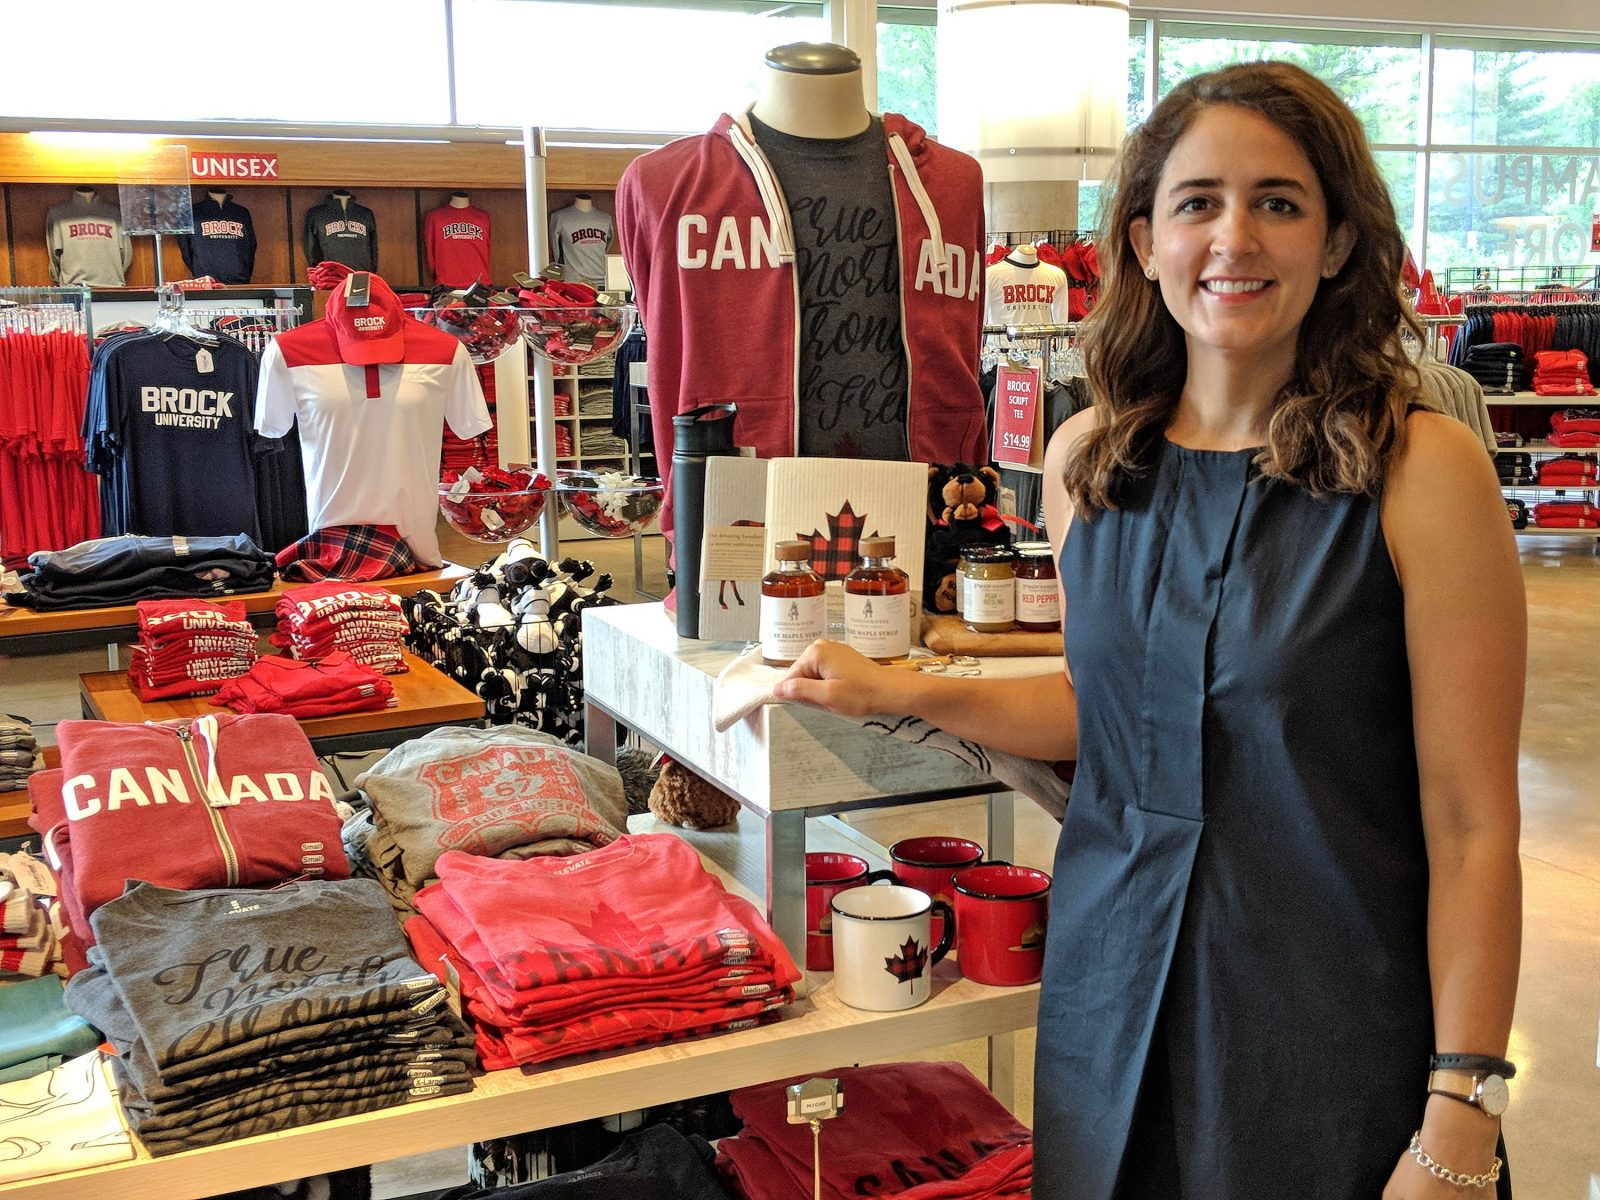 New Buyer And New Clothing Line For Campus Store The Brock News